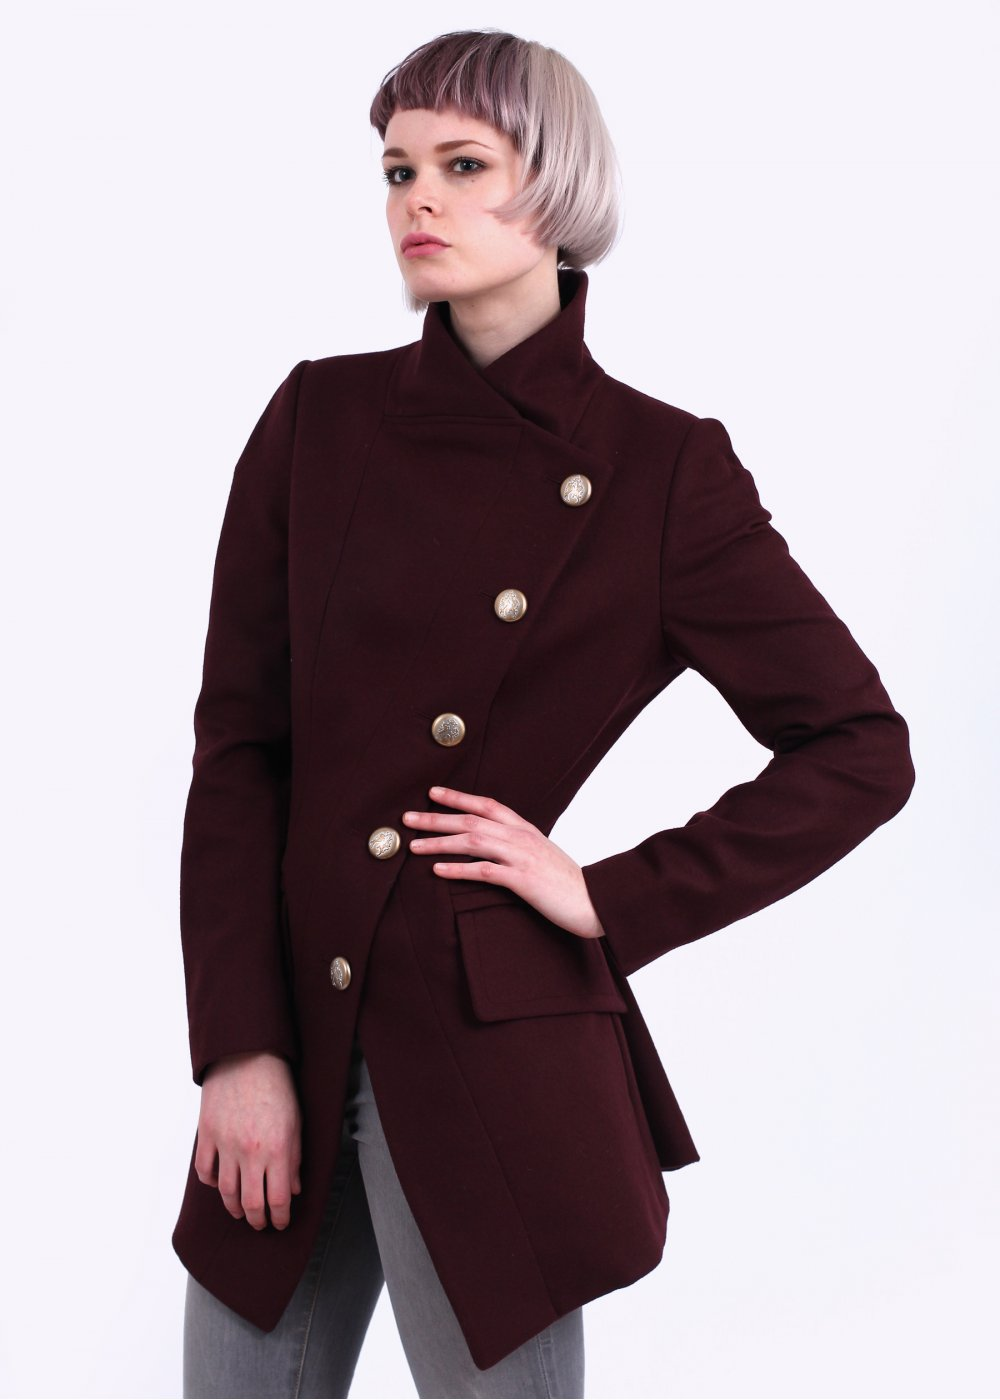 Vivienne Westwood Anglomania State Coat - Burgundy AW14. c8f795f1f